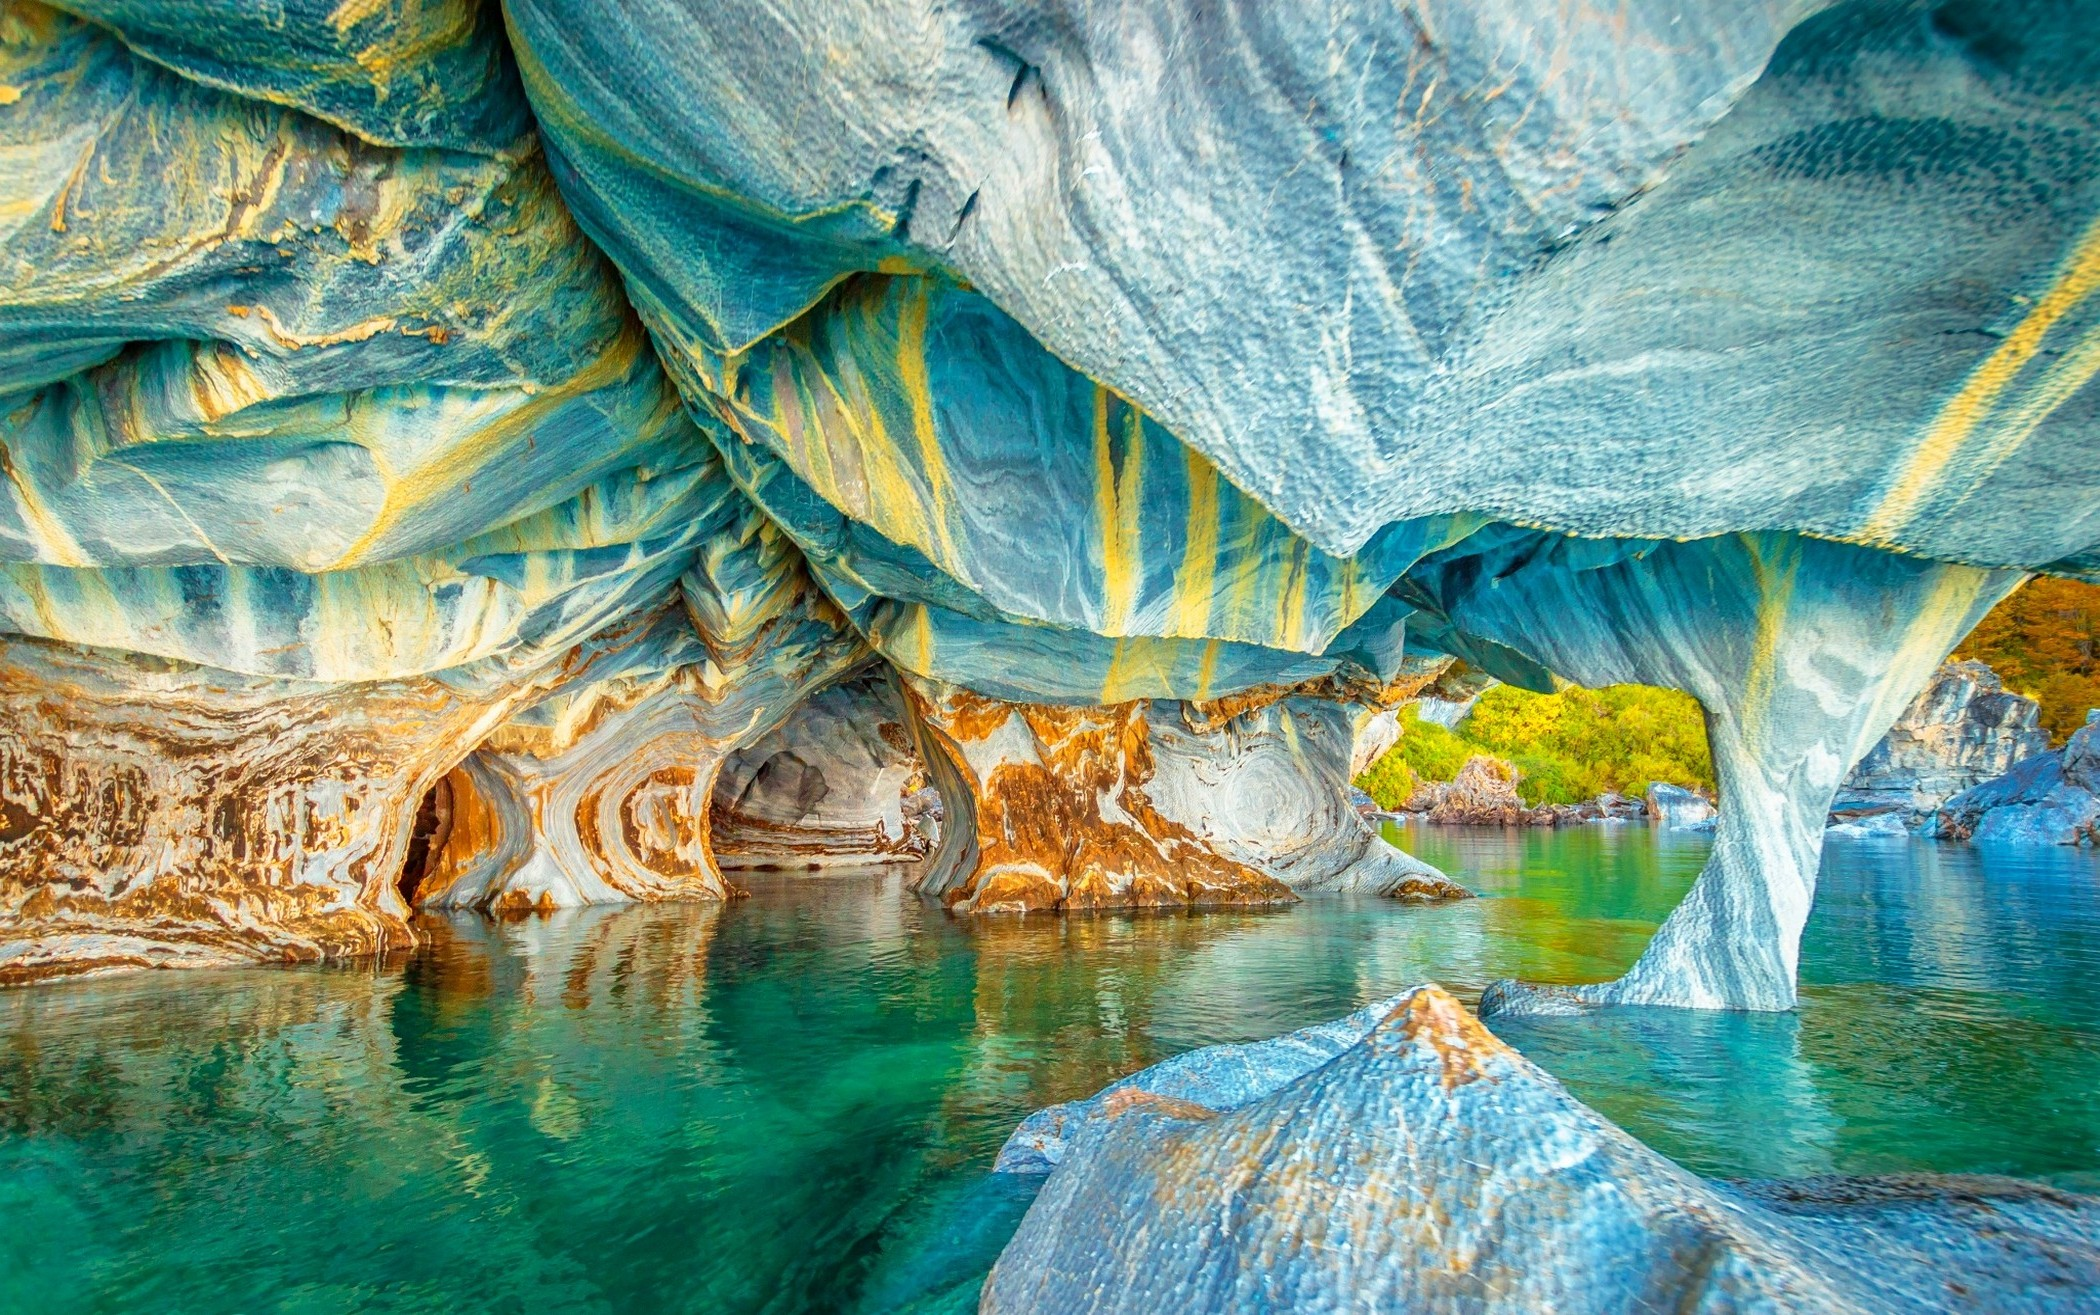 3 Girls Wallpaper Nature Landscape Lake Cave Chile Colorful Water